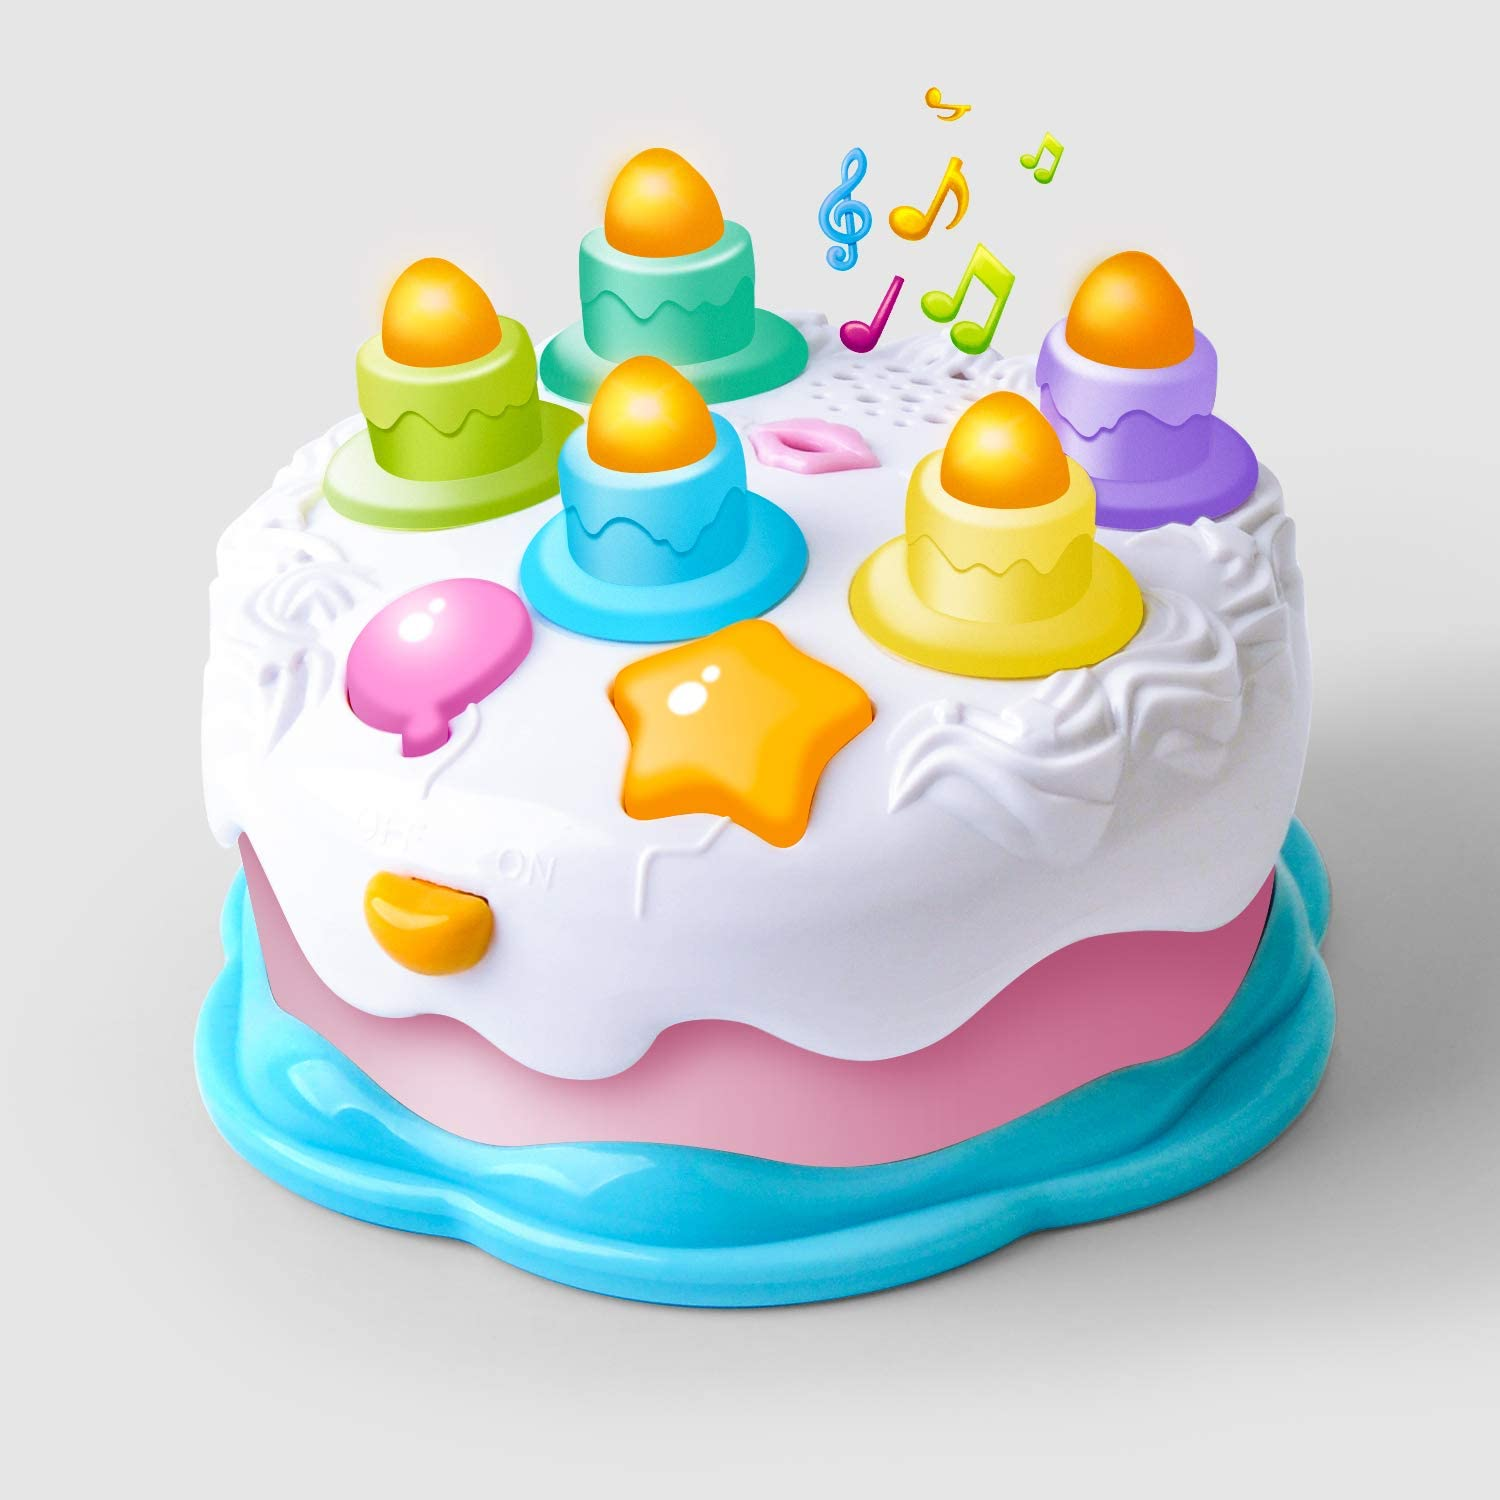 Awe Inspiring Gizmovine Baby Musical Toys Kids Birthday Cake For Toddlers With Personalised Birthday Cards Veneteletsinfo